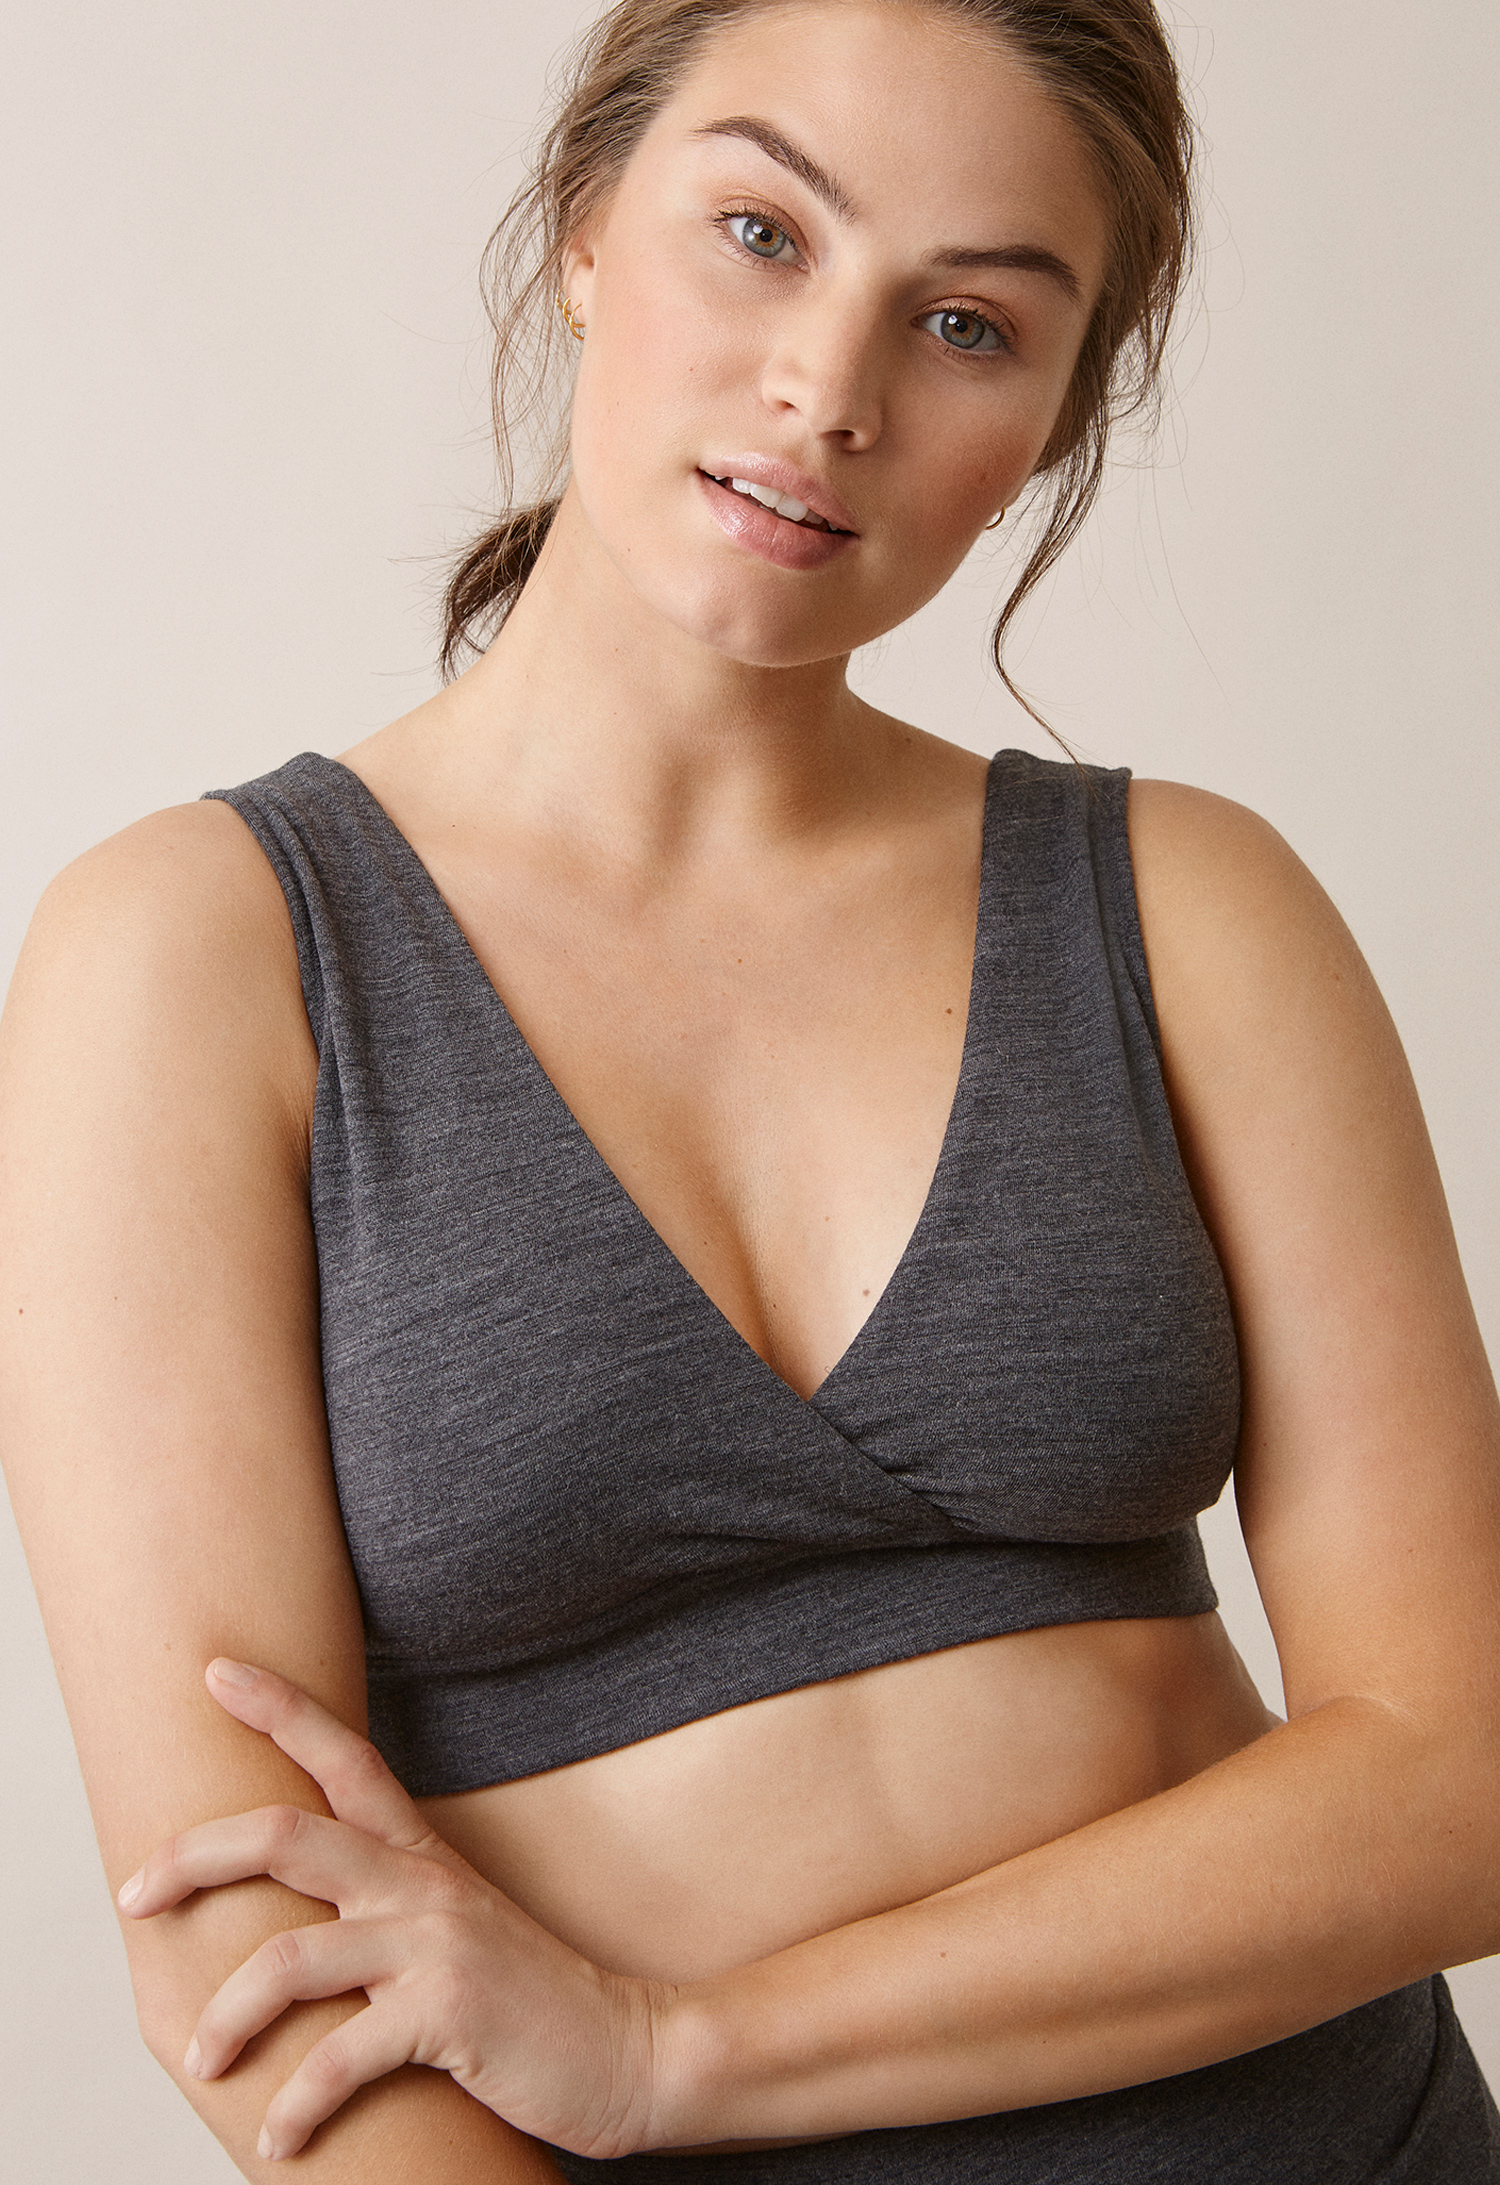 24/7 Merino wool bra, dk greymelange M (4) - Maternity Active wear / Nursing Activewear